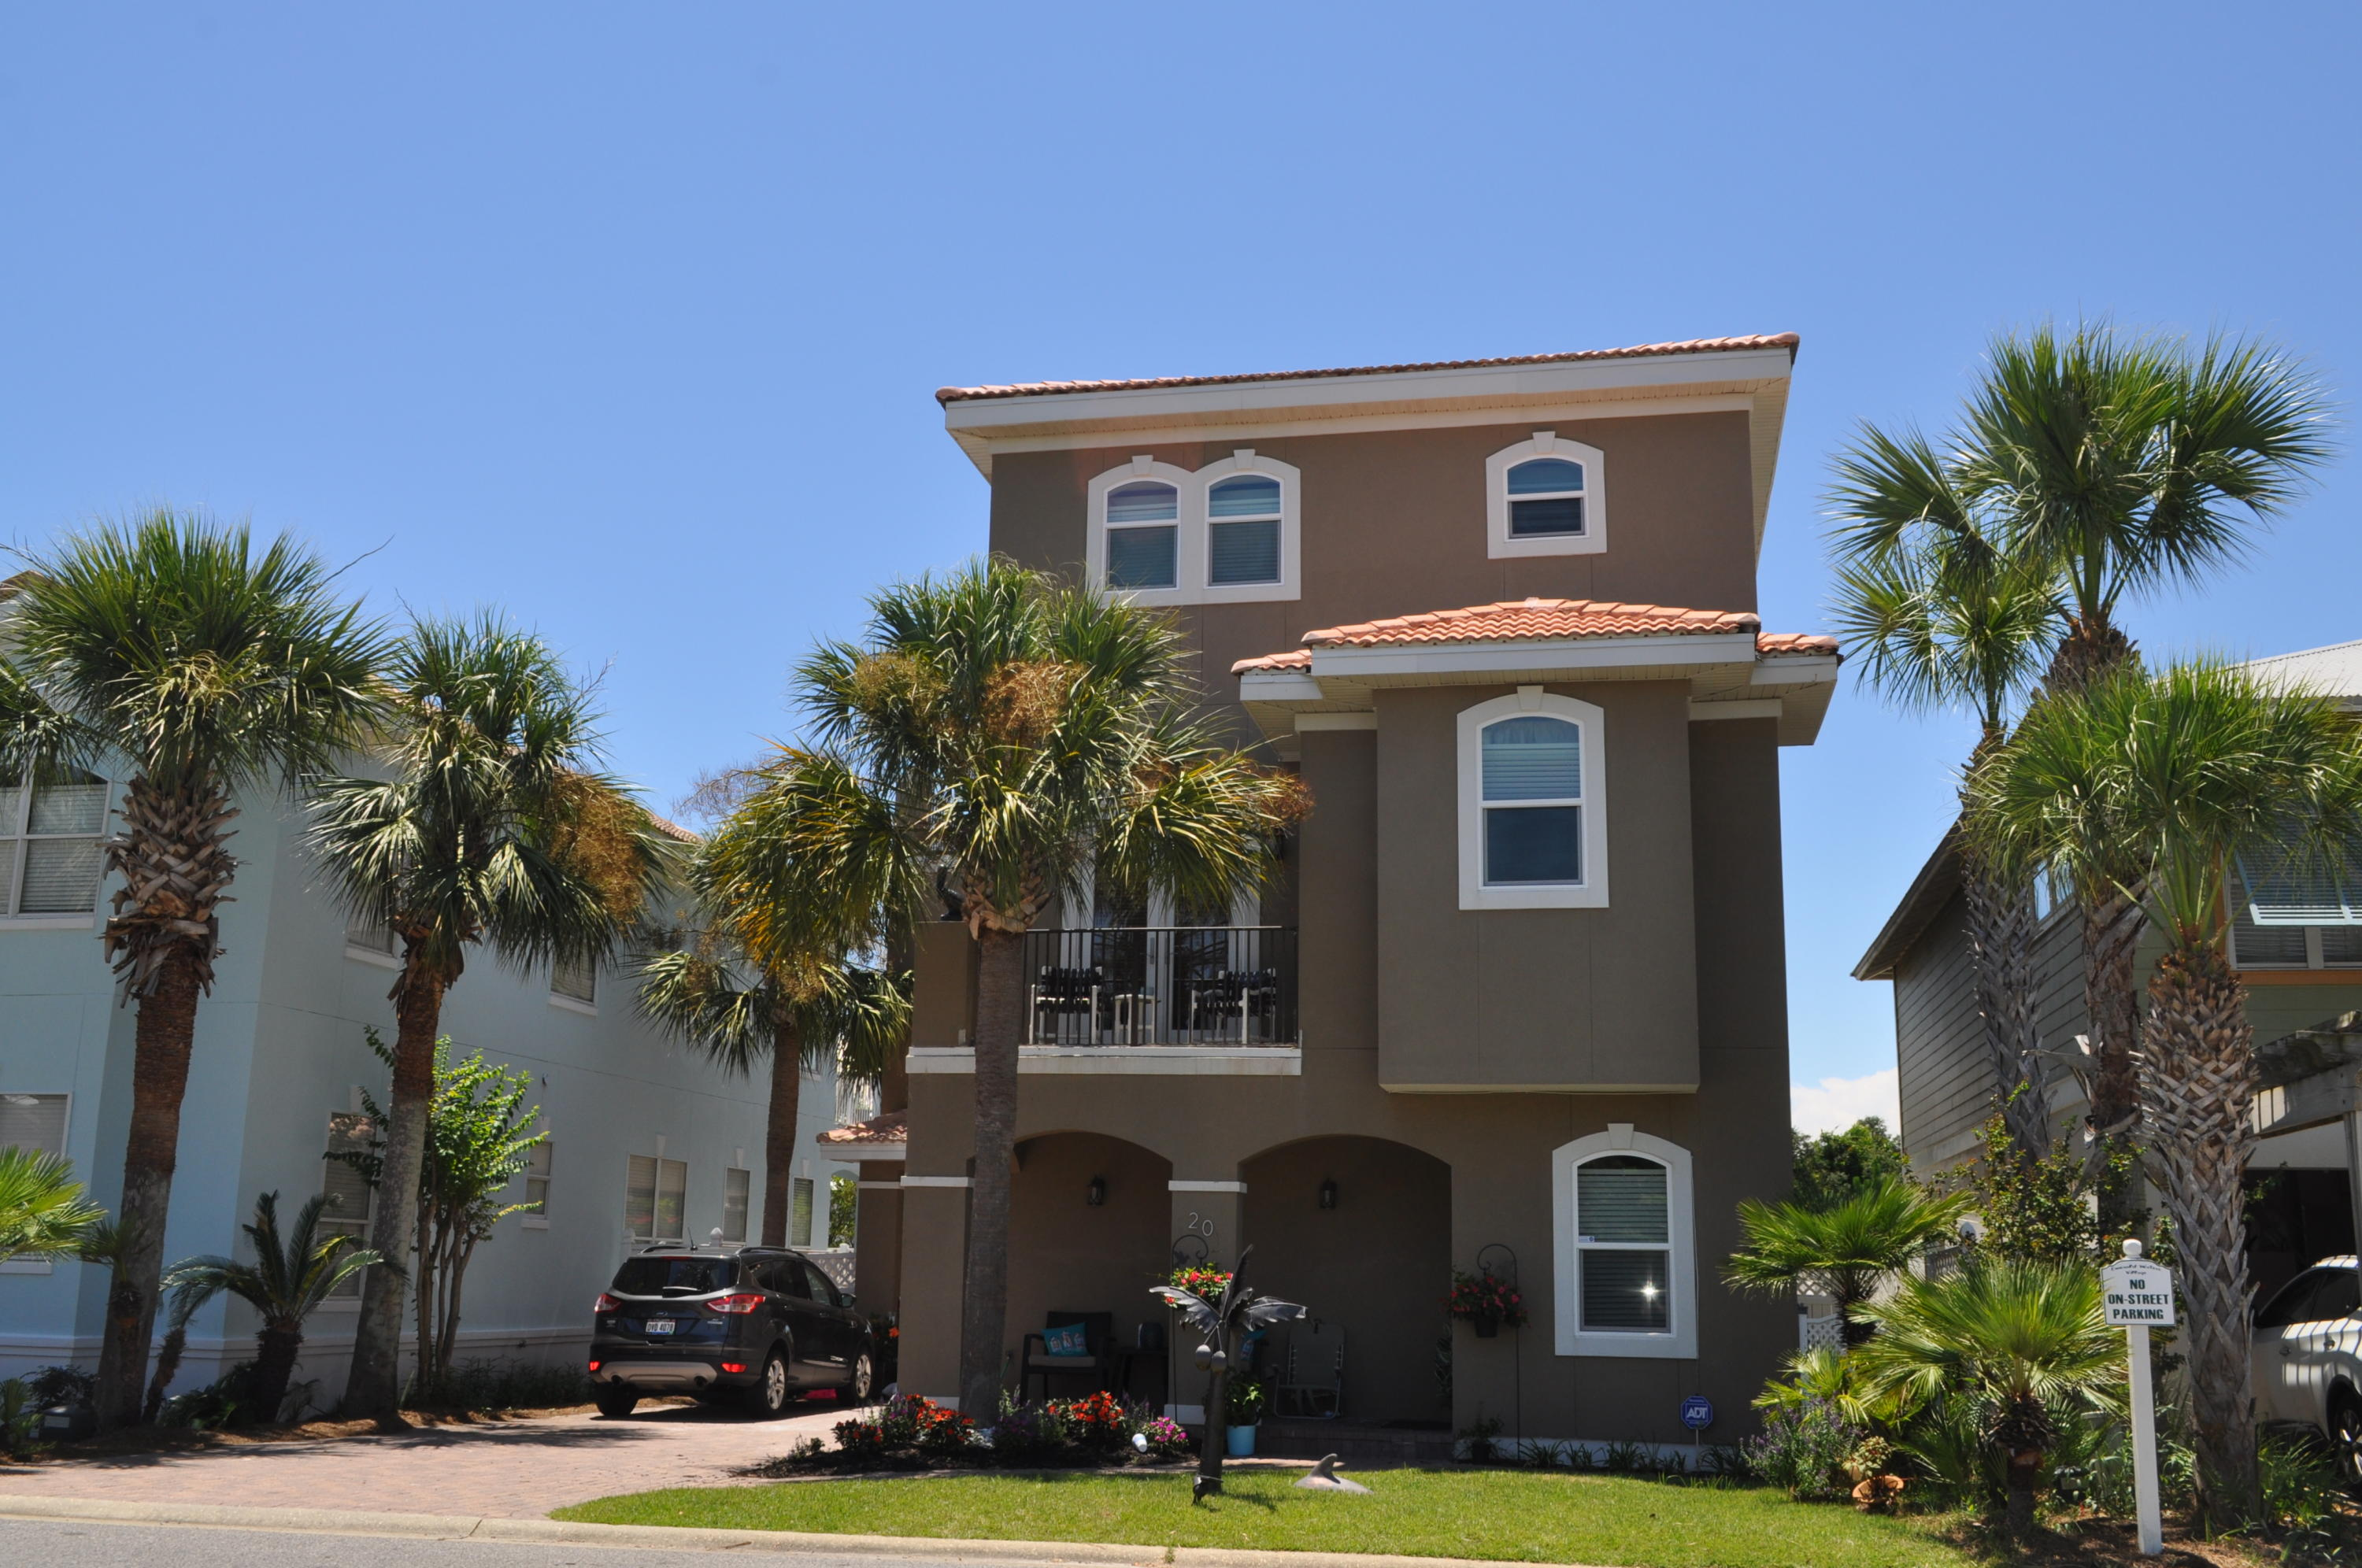 Photo of home for sale at 20 Saint Francis, Miramar Beach FL